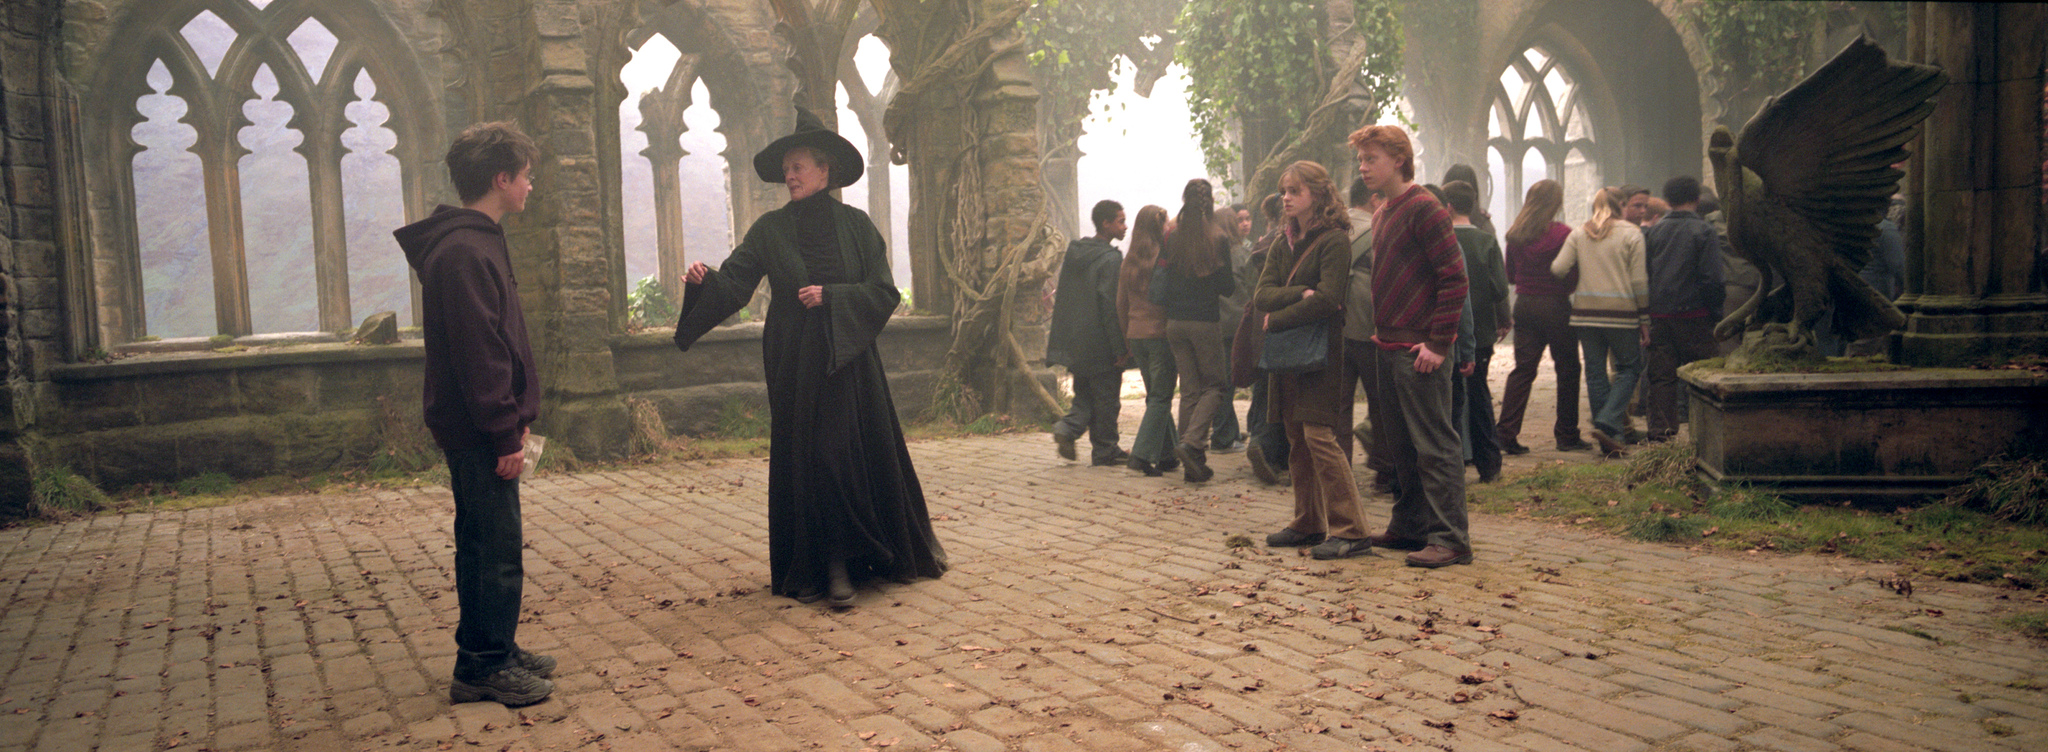 Maggie Smith, Rupert Grint, Daniel Radcliffe, and Emma Watson in Harry Potter and the Prisoner of Azkaban (2004)